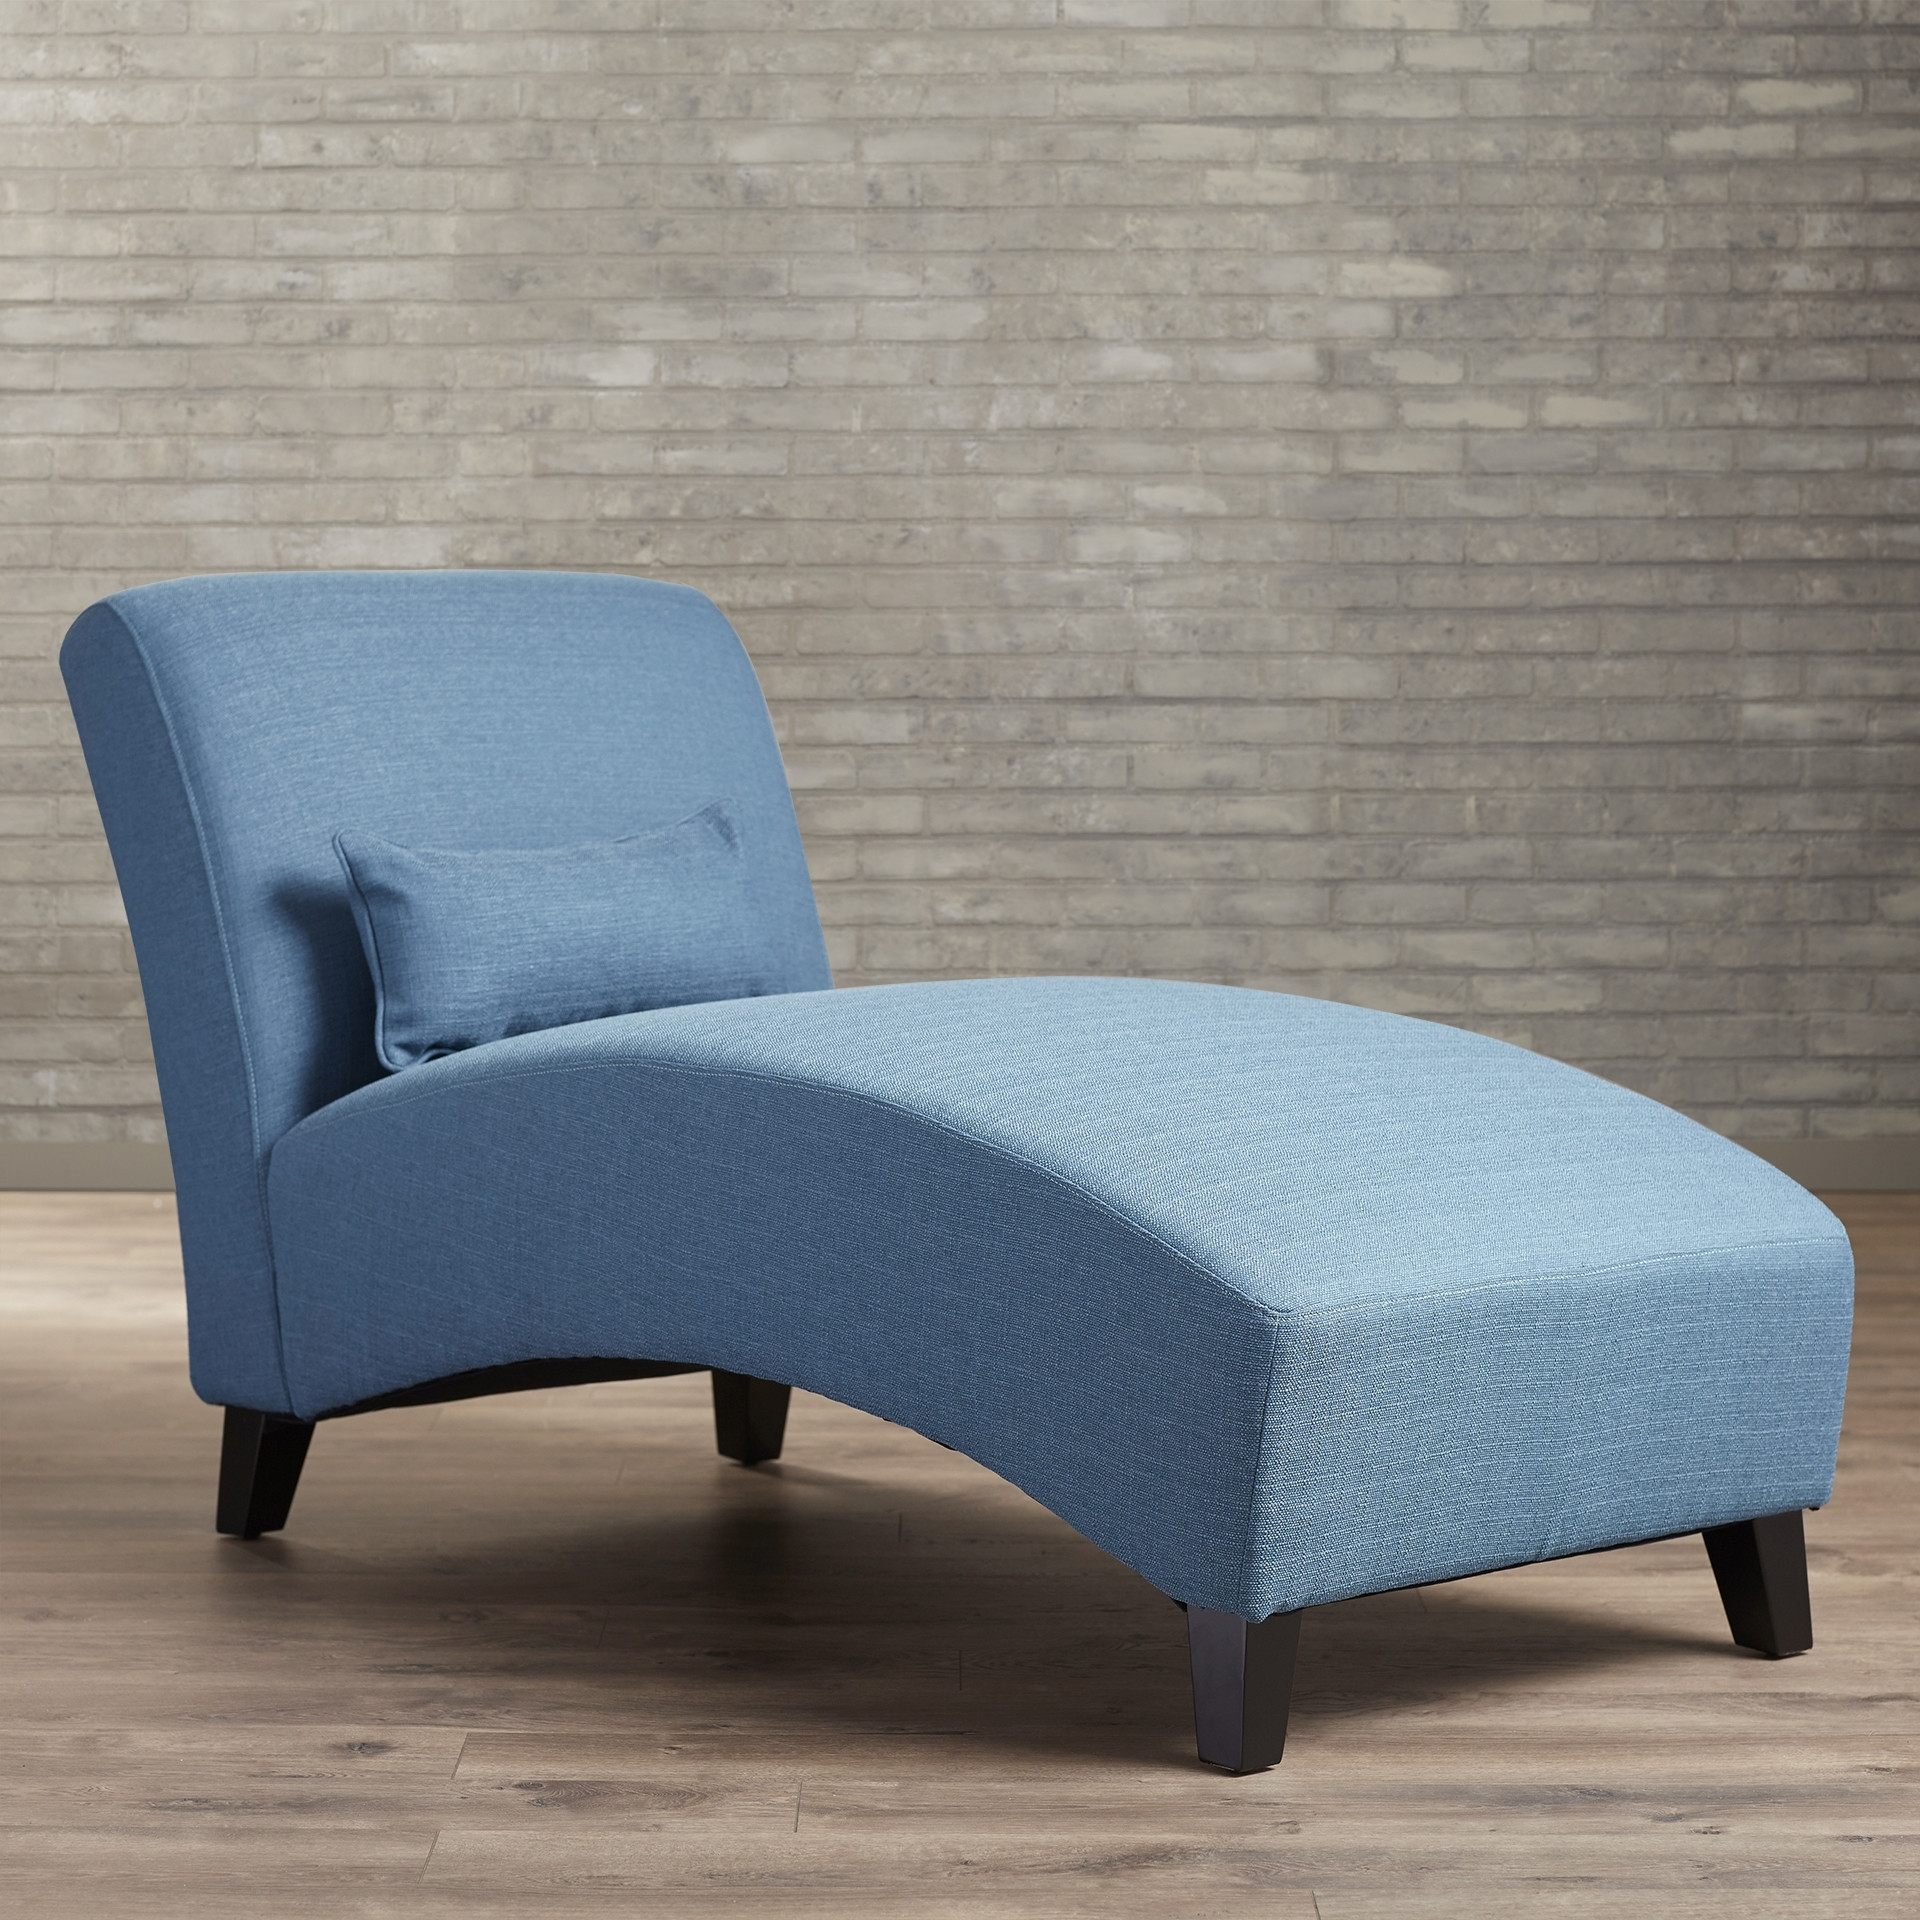 Sofa. Great Chaise Lounge Chairs: Blue Chaise Lounge Chairs With Pertaining To Most Current Blue Chaise Lounges (Gallery 14 of 15)